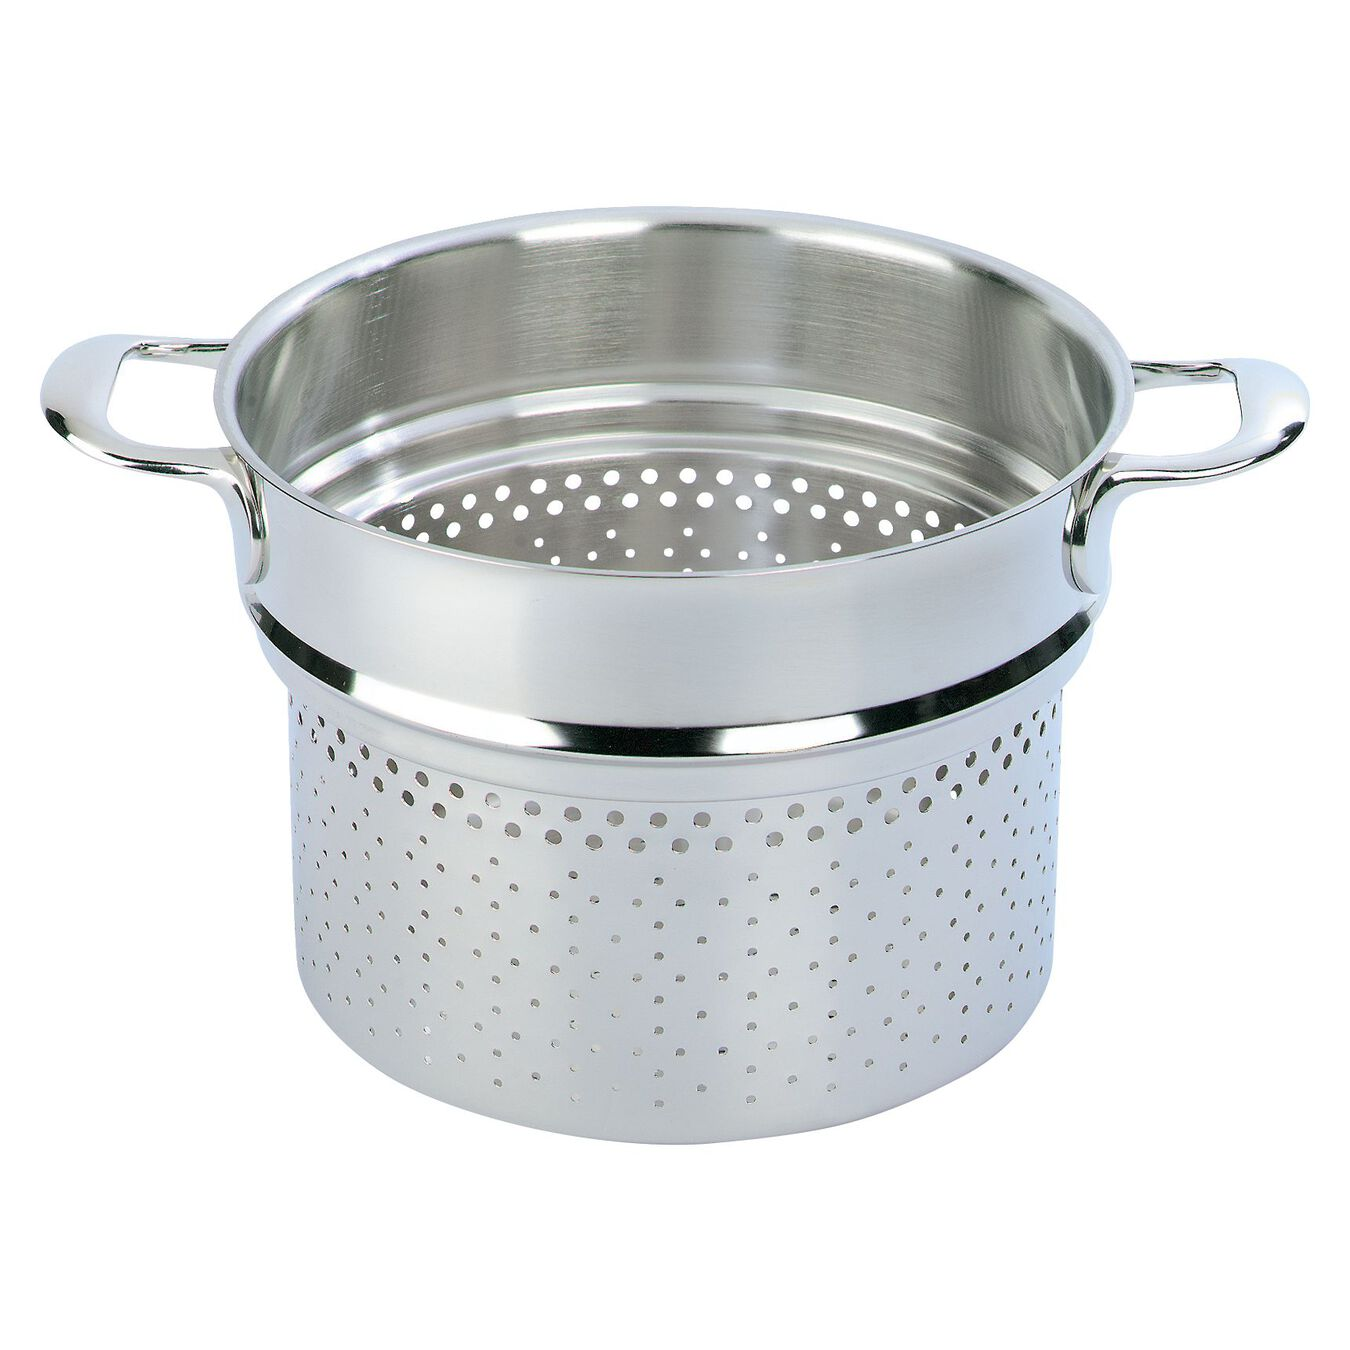 24 cm 18/10 Stainless Steel Pasta insert,,large 1